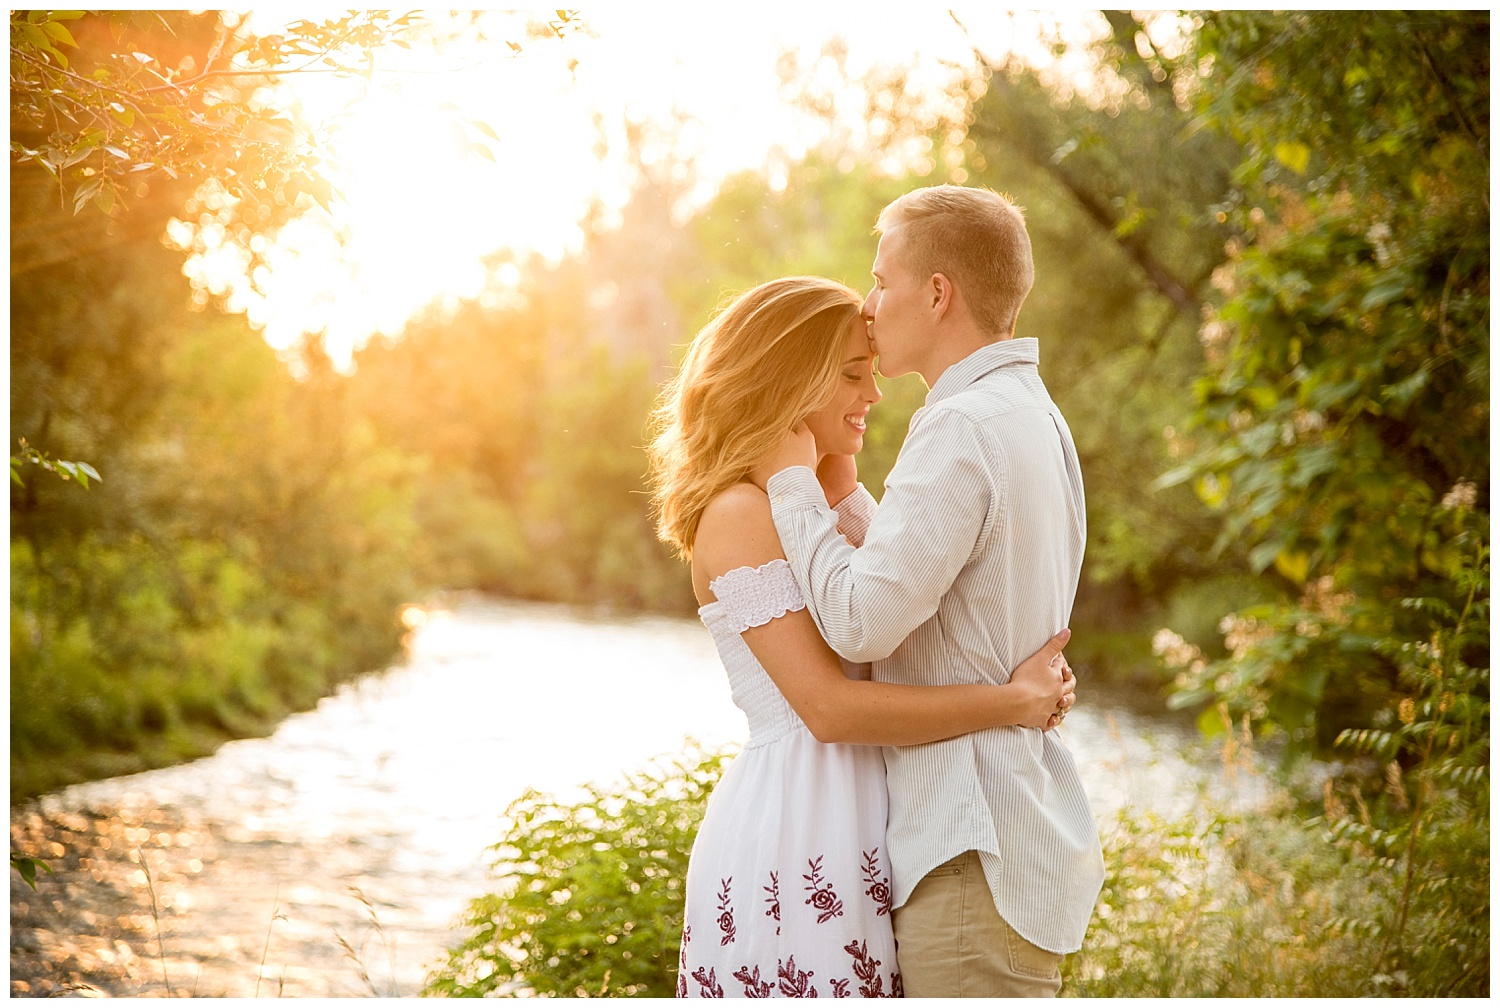 Man Kissing Young Woman on Forehead During Sunset | Mike and Allison's Intimate Engagement Session | Clear Creek, Arvada, Colorado | Farm Wedding Photographer | Apollo Fields Wedding Photojournalism